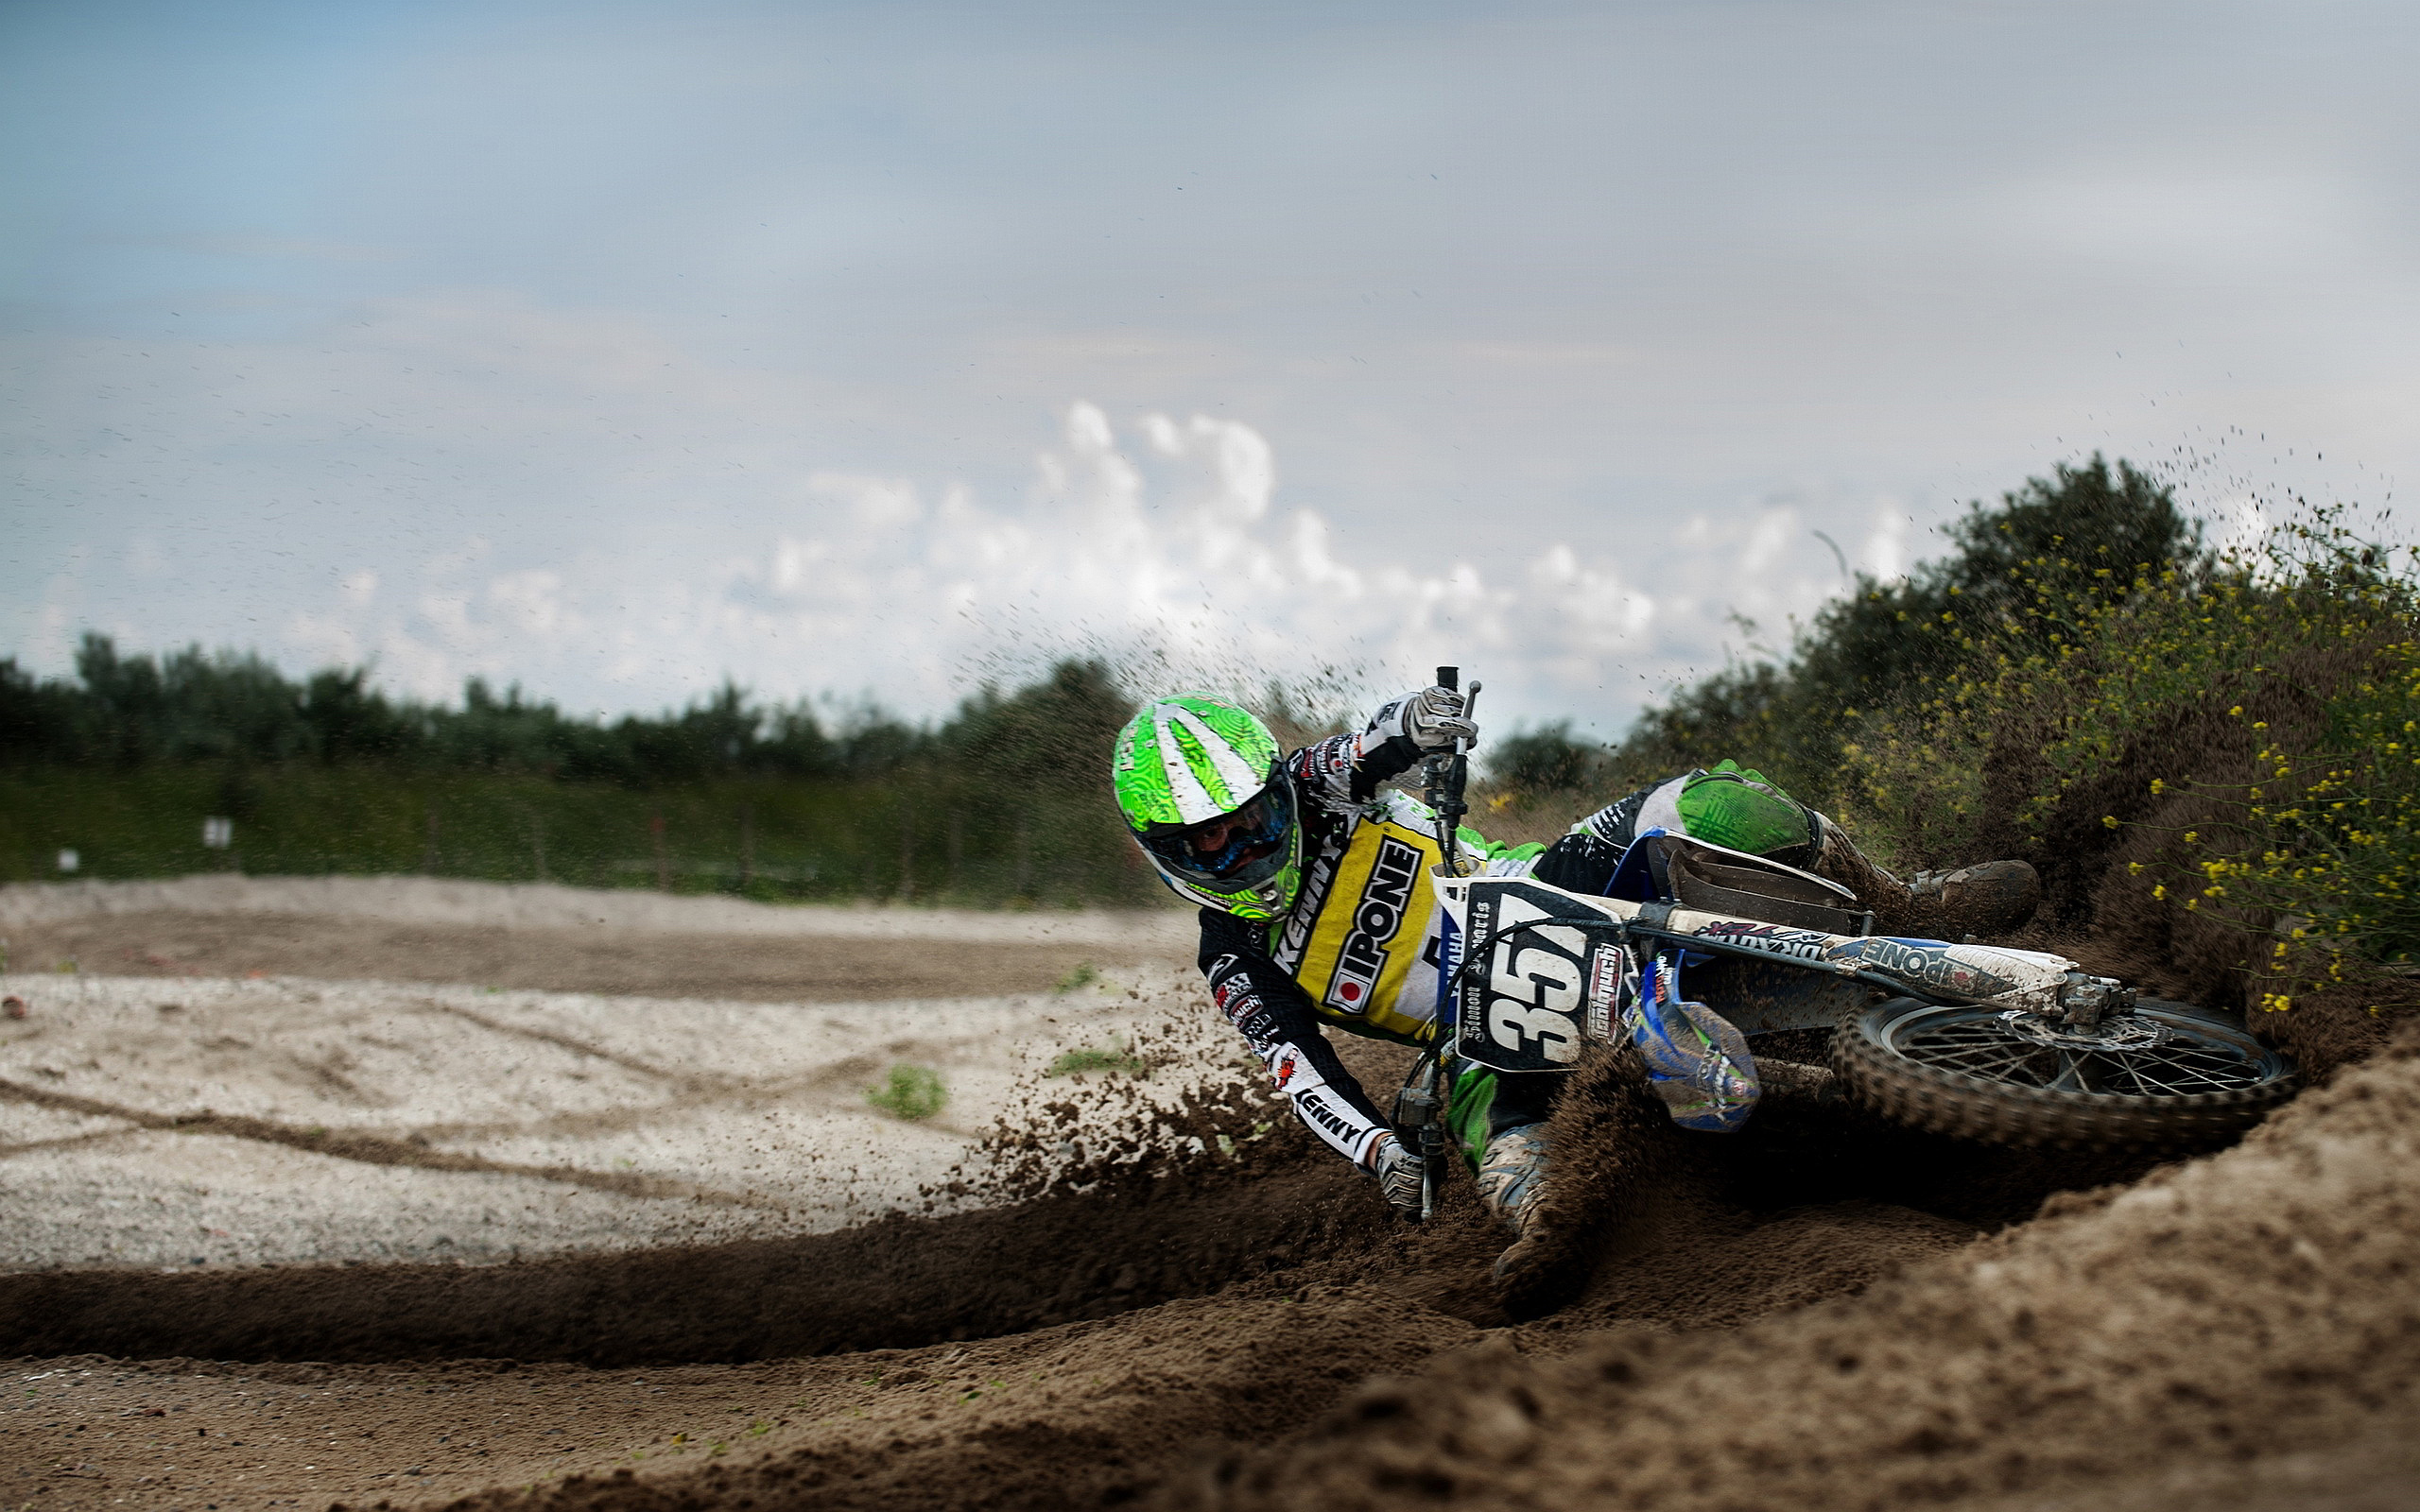 amazing motocross wallpaper 41686 42664 hd wallpapersjpg 2560x1600